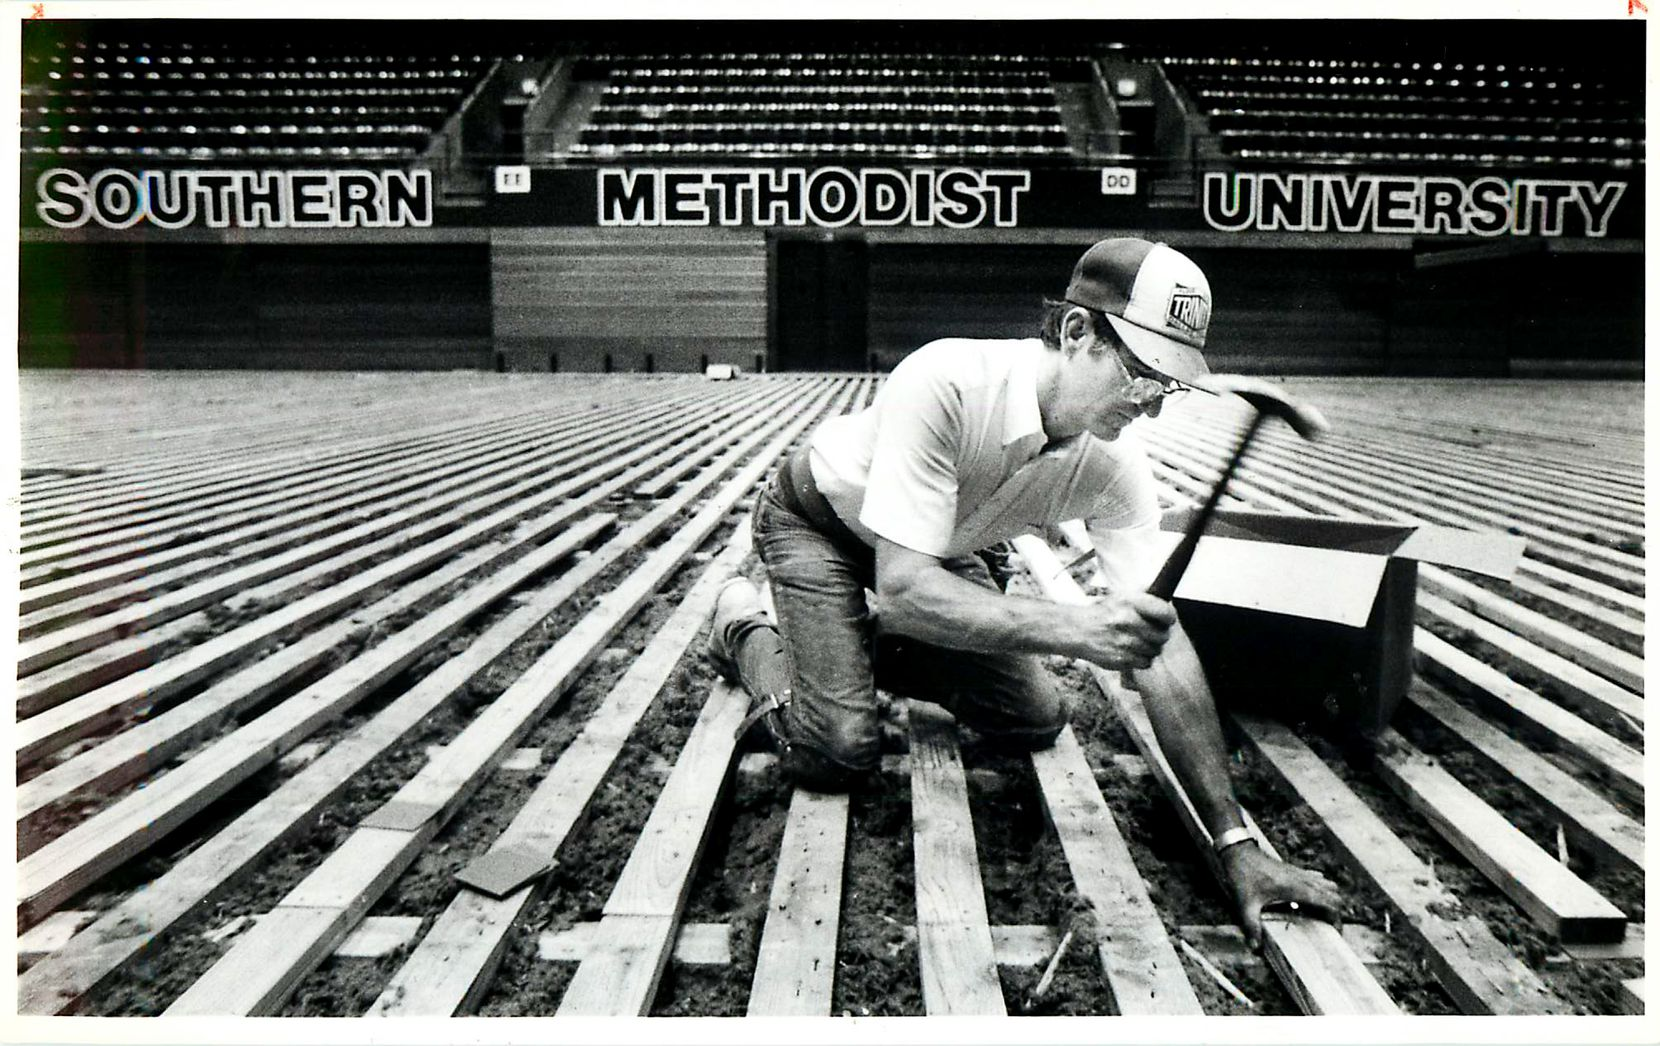 """Original caption (revised to add date and city): """"Wayne Smith, of Trinity Floor, hammers nails into the base of the new floor being installed in Moody Coliseum at SMU in Dallas August 18, 1986. The work was started two weeks ago and will continue for another month and a half."""""""